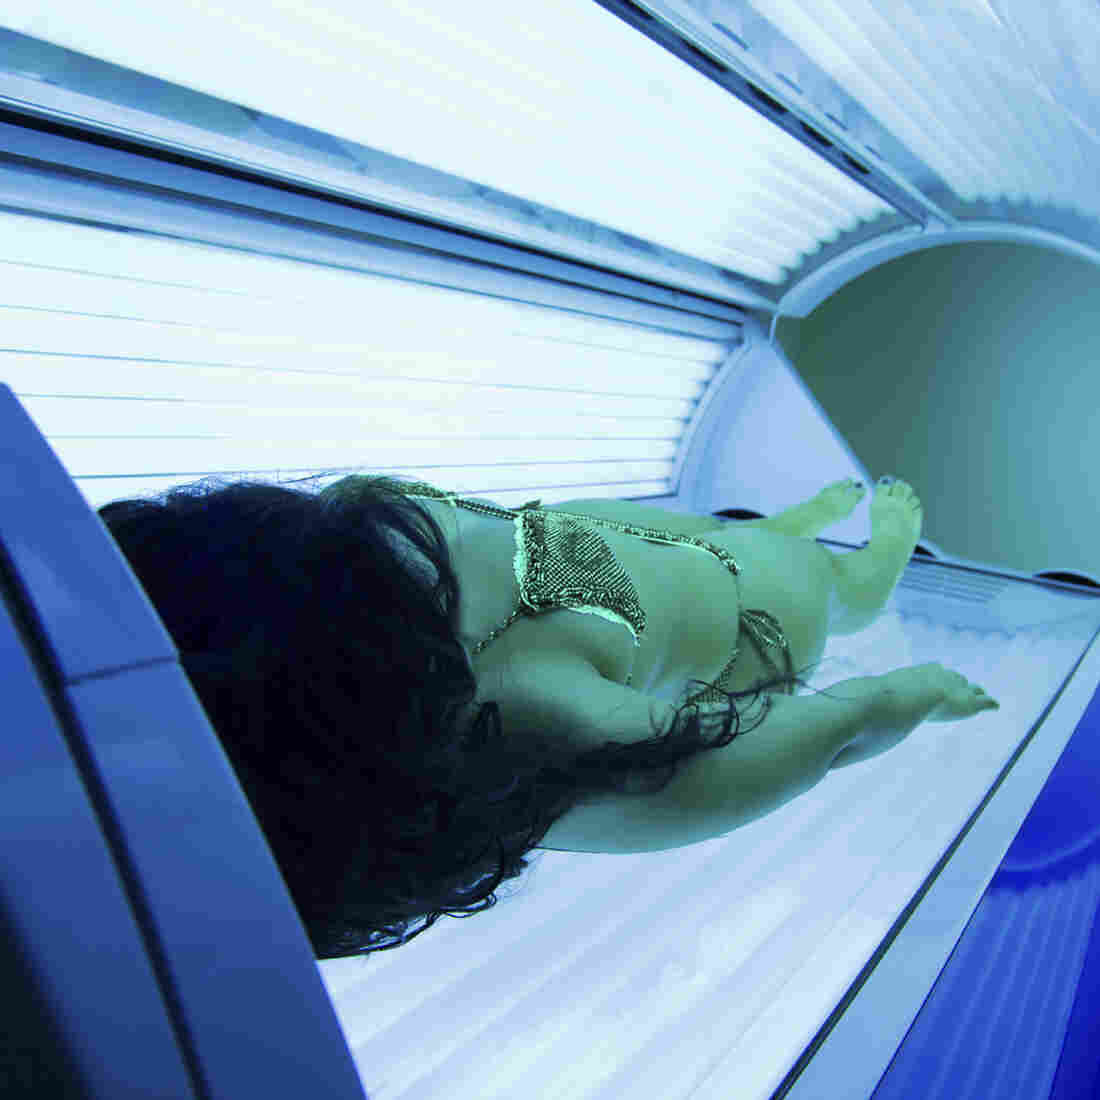 Campuses Play Host To Tanning Beds, Despite Skin Cancer Risk